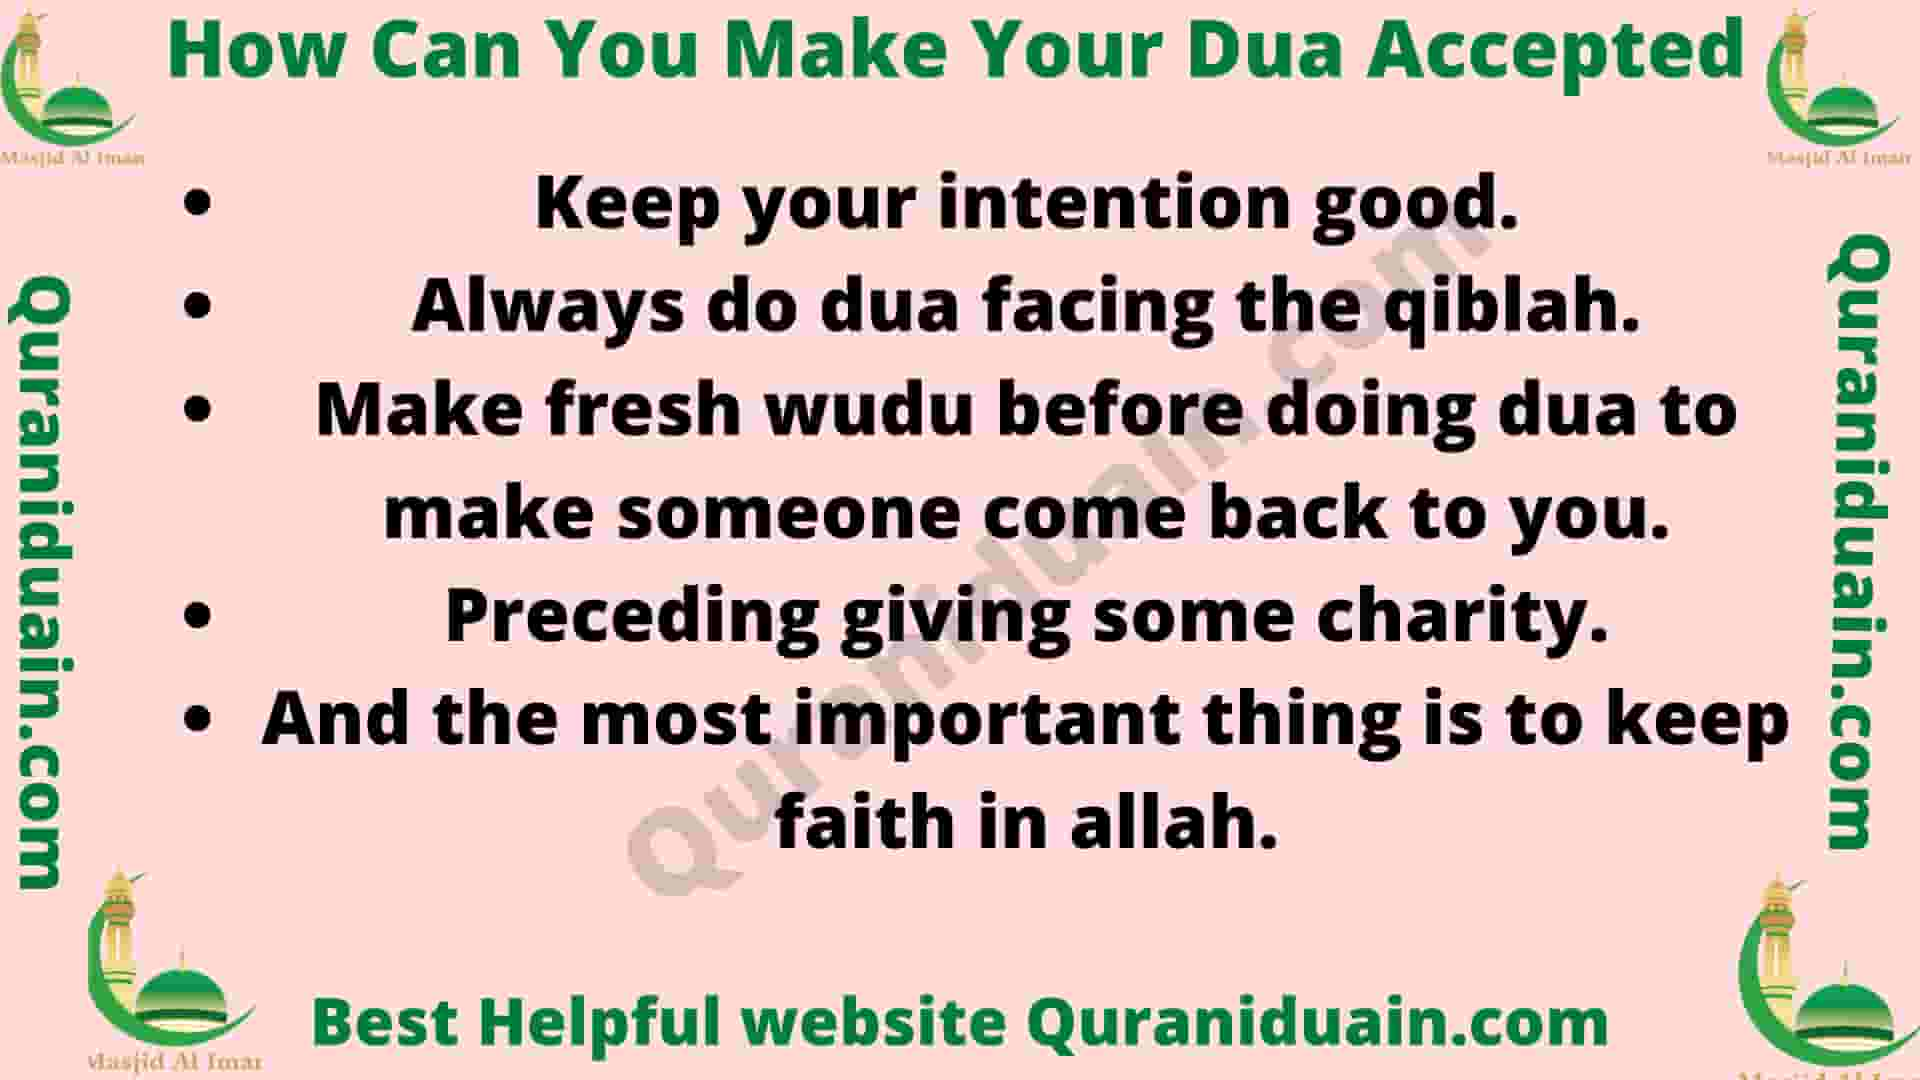 How Can You Make Your Dua Accepted